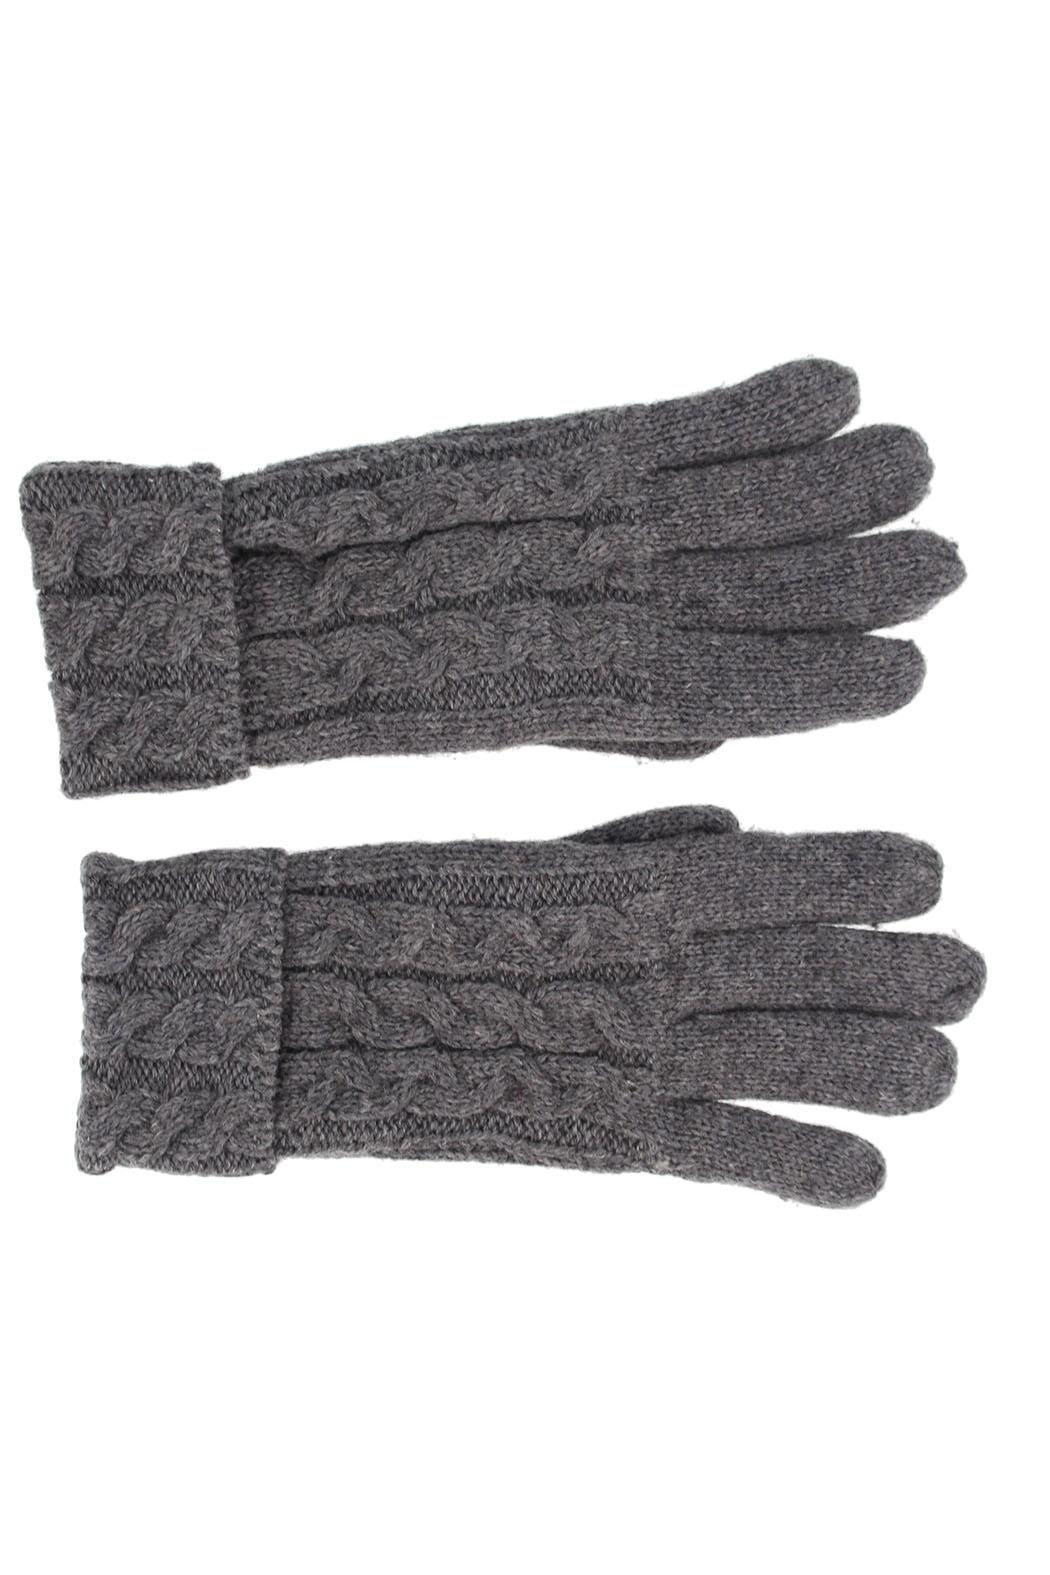 Violet & Virtue Cable Knit Gloves - Front Cropped Image